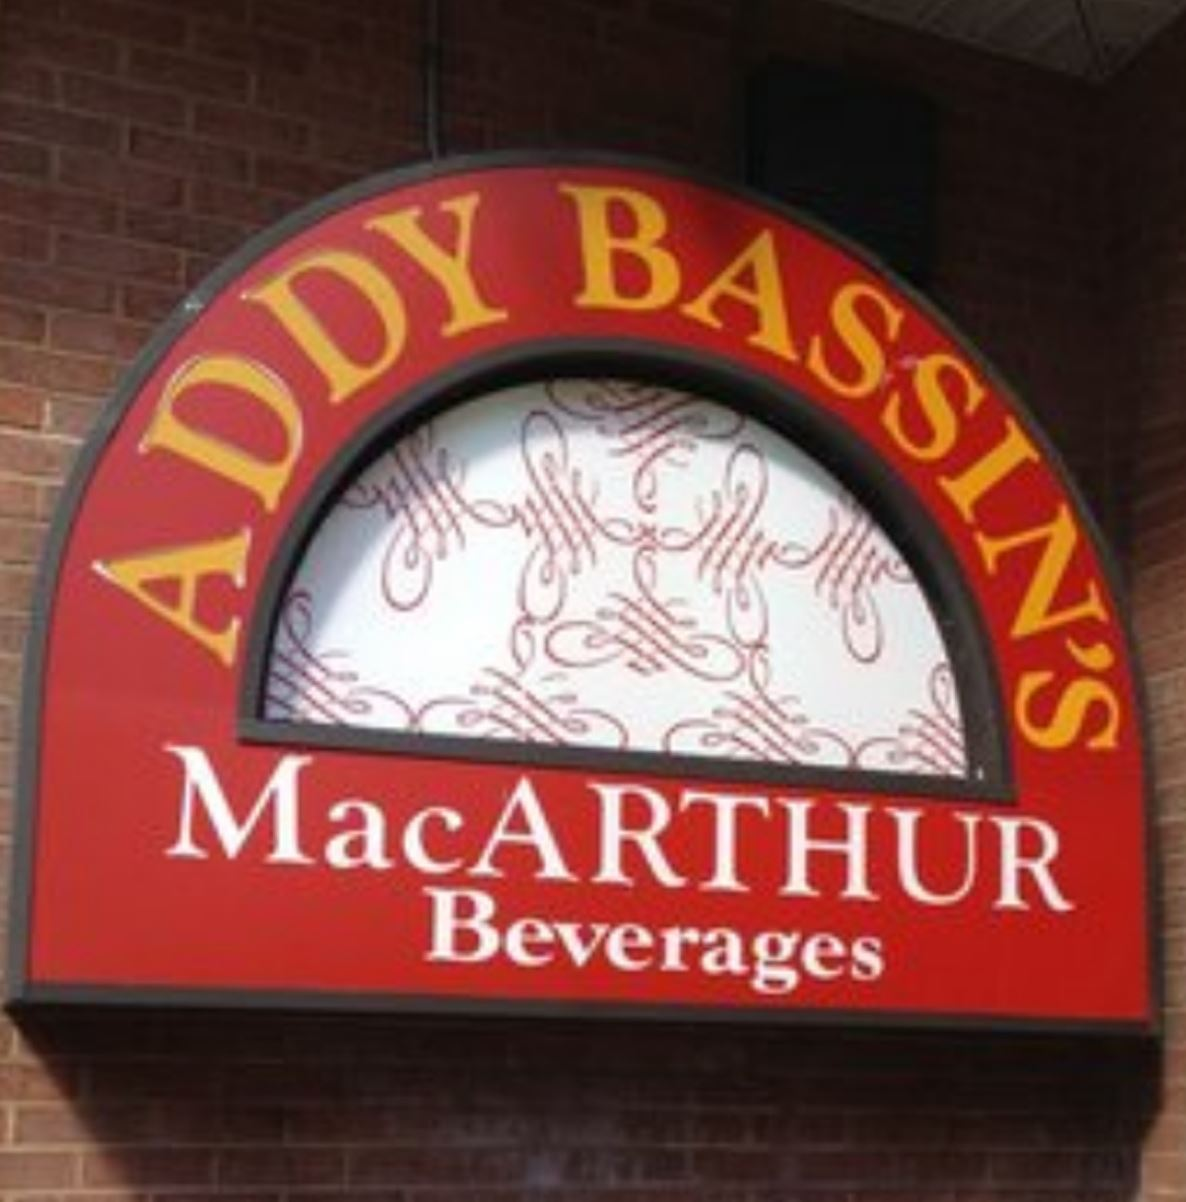 macarthur-5 Washington, D.C.'s, MacArthur Beverages. Andy Bassin proprietor.